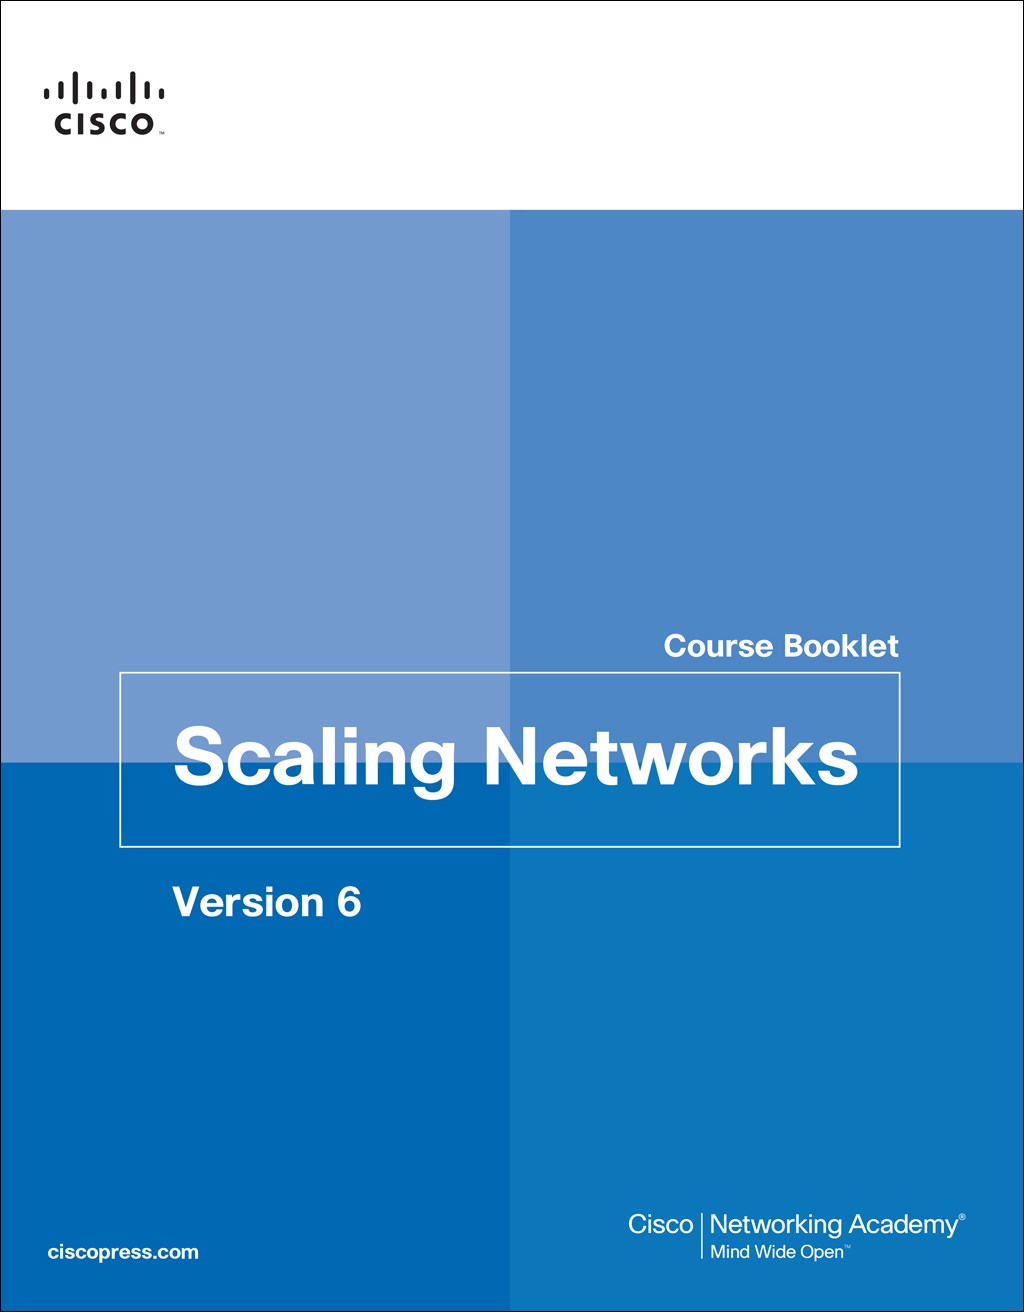 Scaling Networks v6 Course Booklet